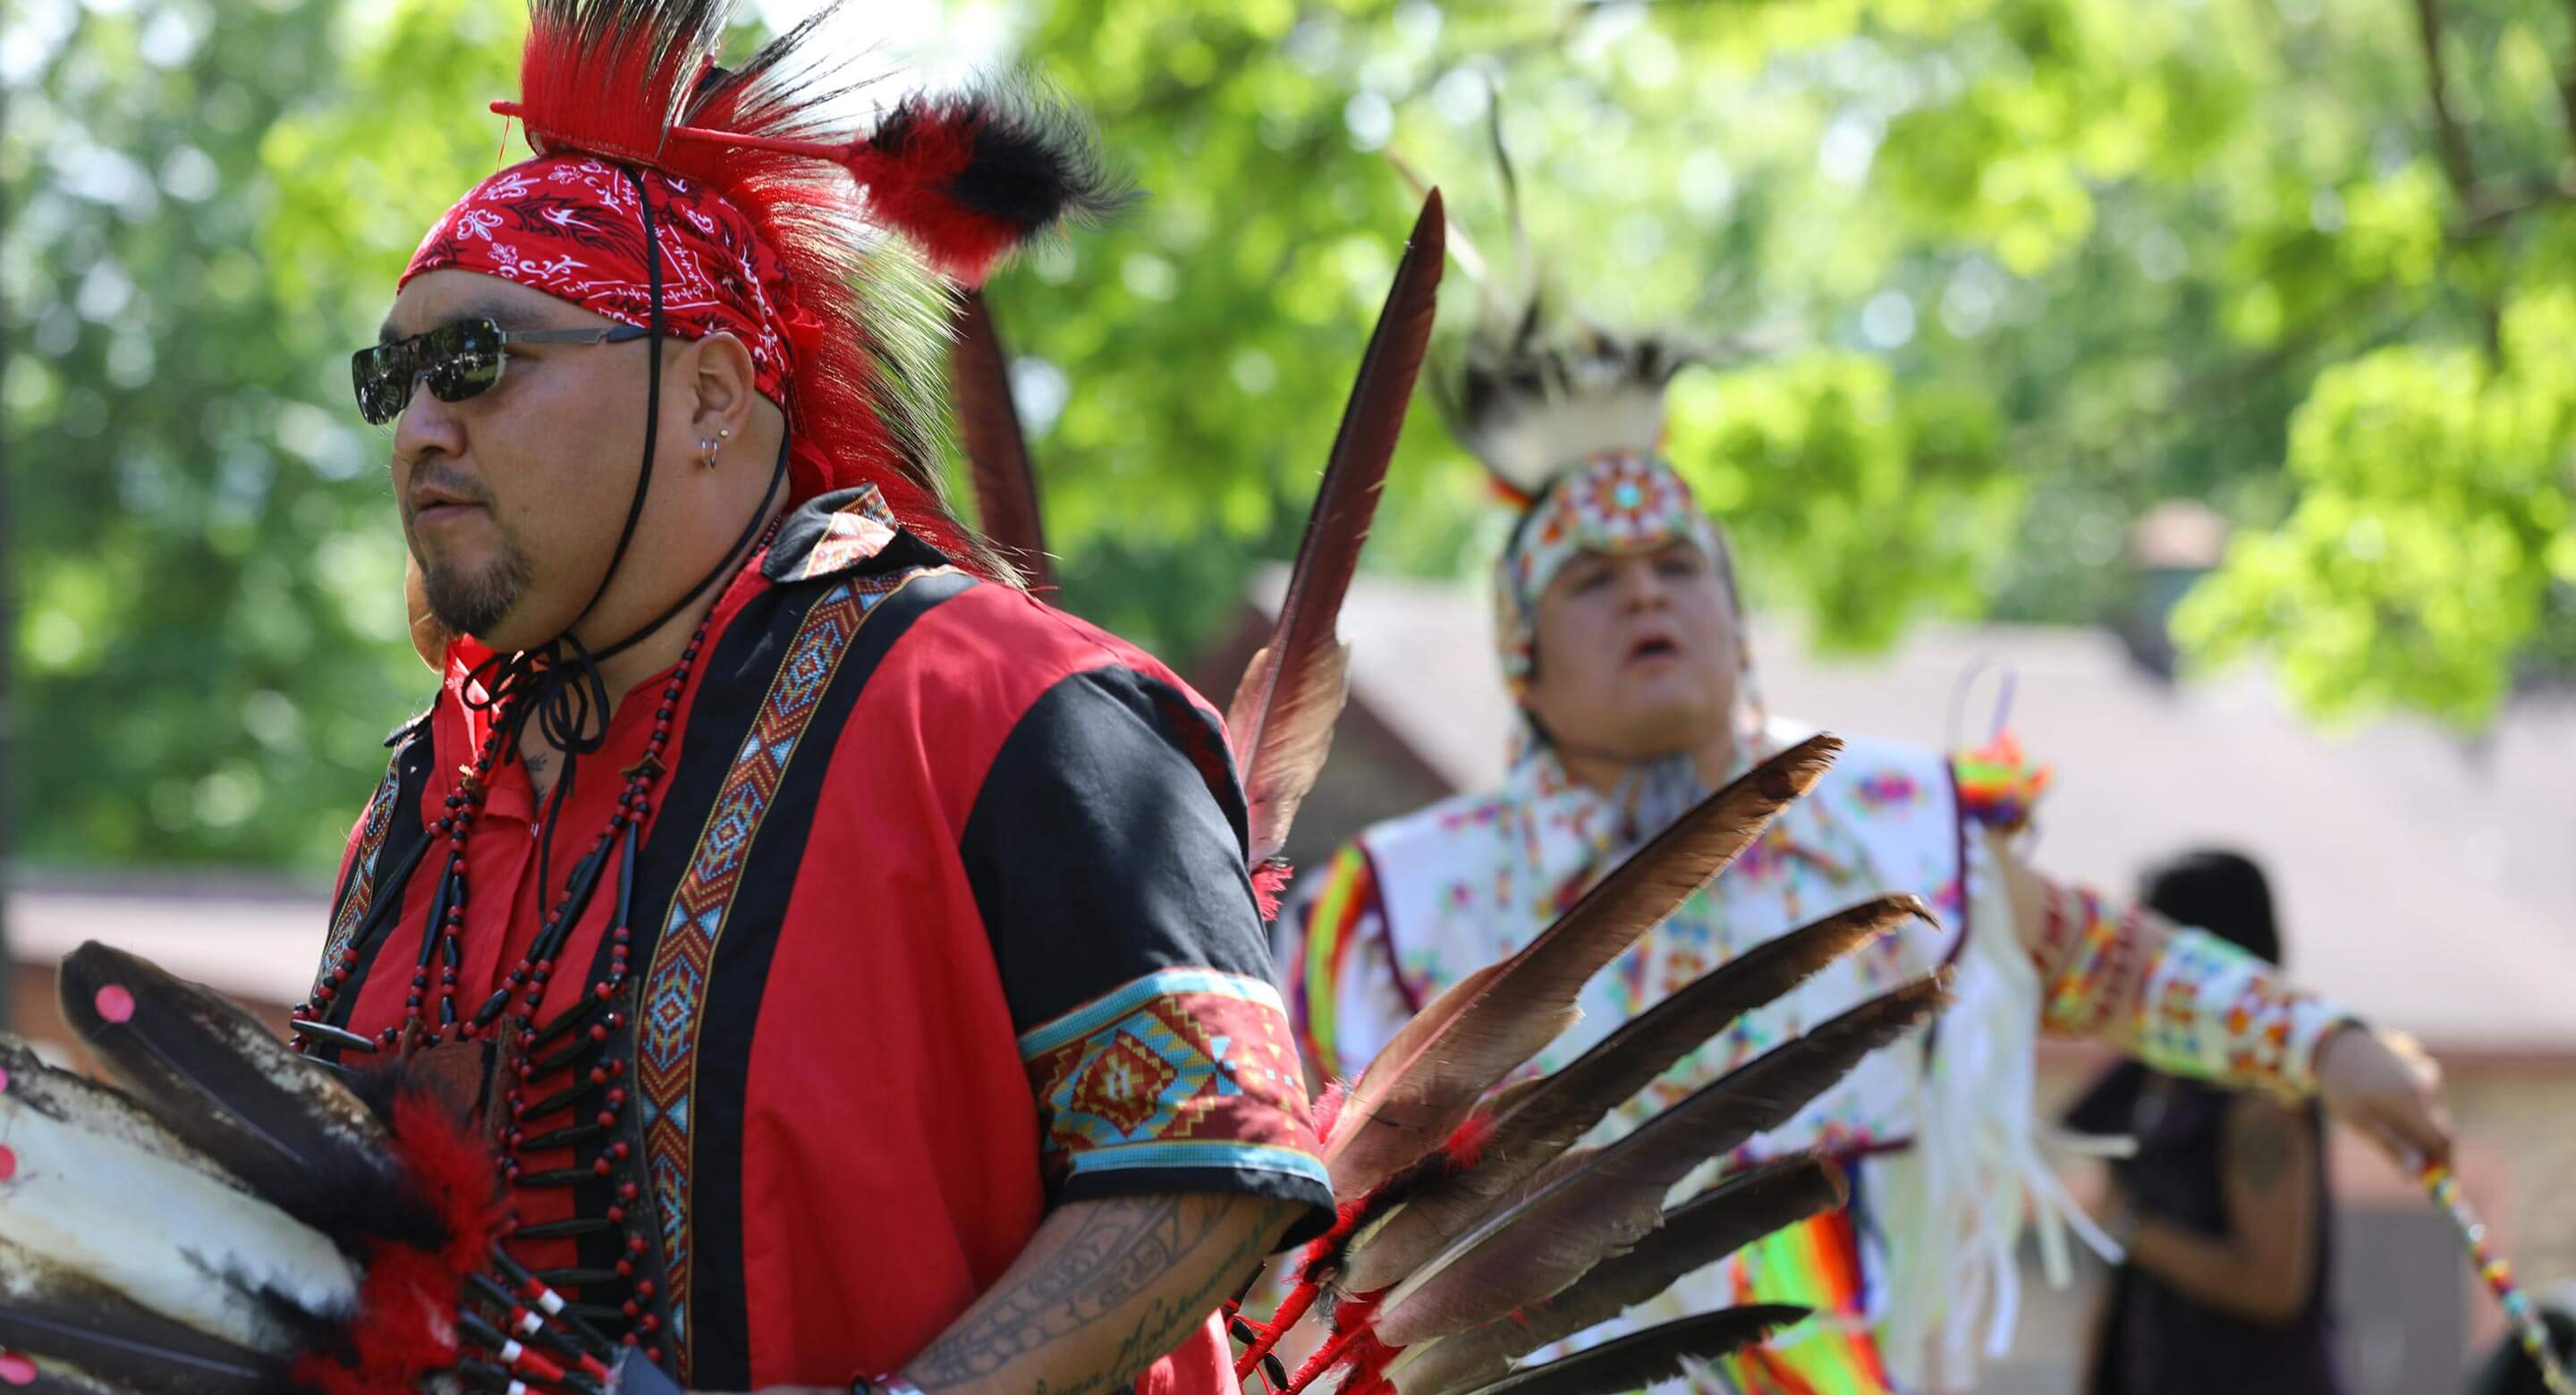 The Pow Wow featured traditional drum groups and dancers